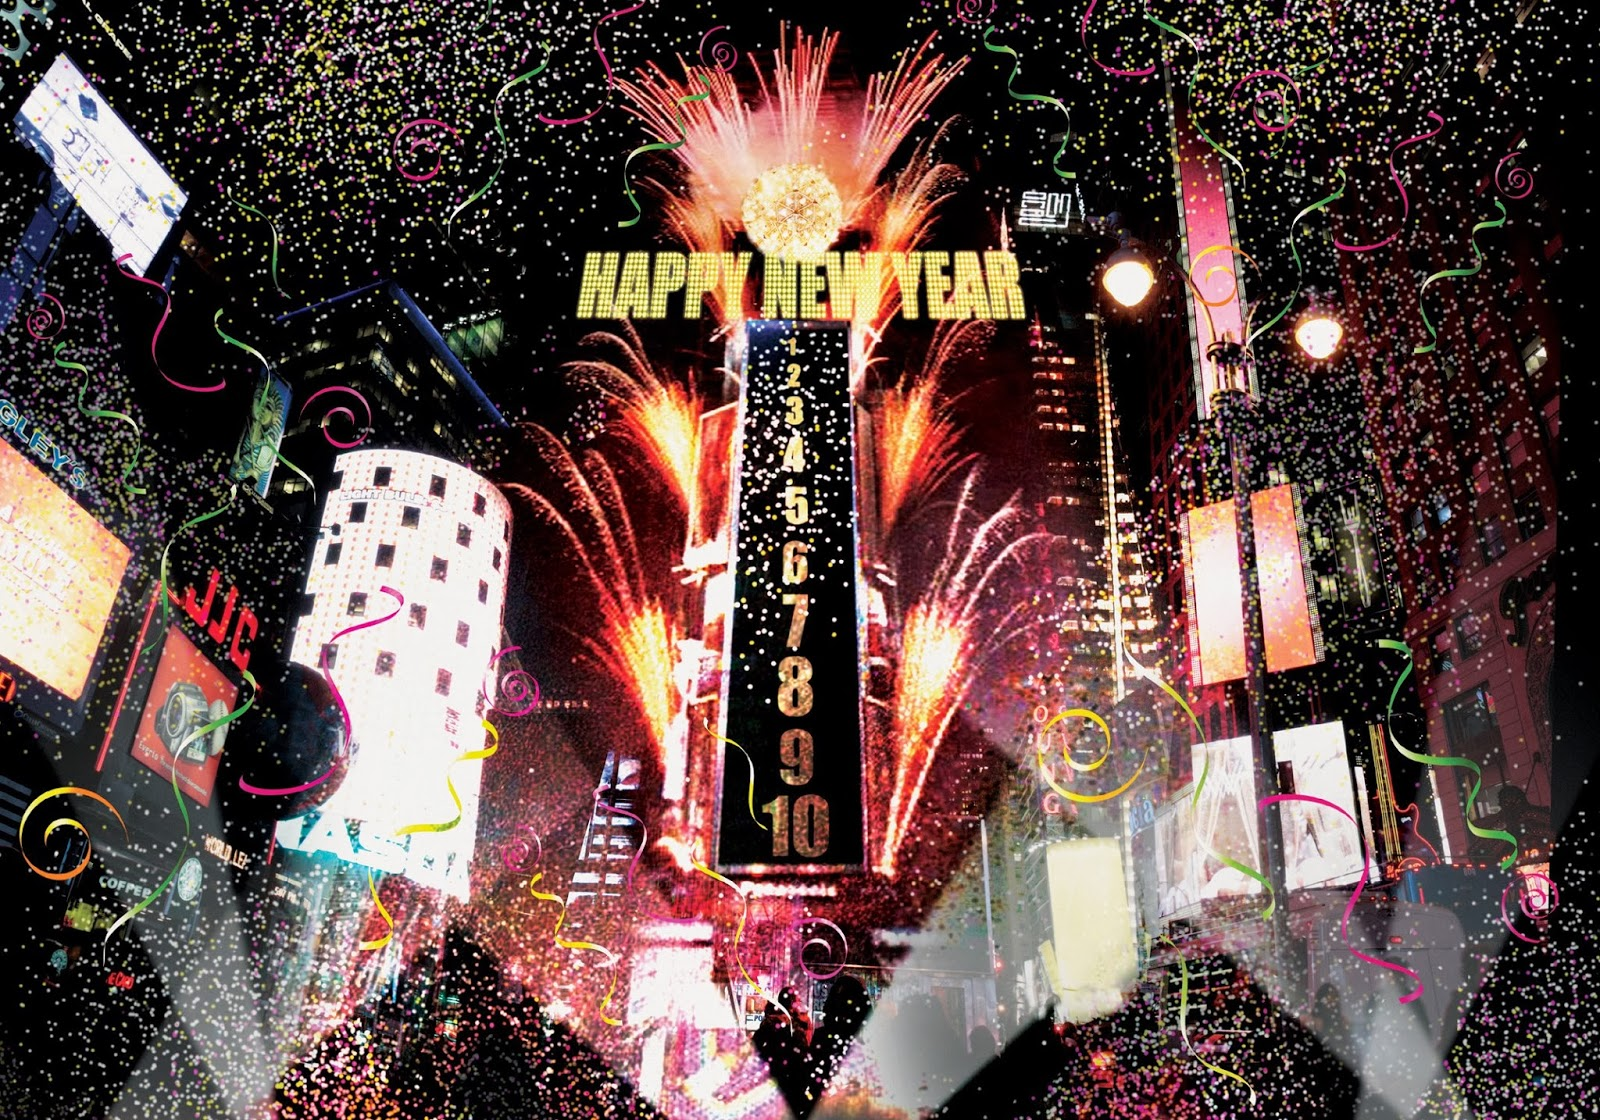 Times Square New Years Eve 2014.5 How To Say Happy New Year Wishes 2014